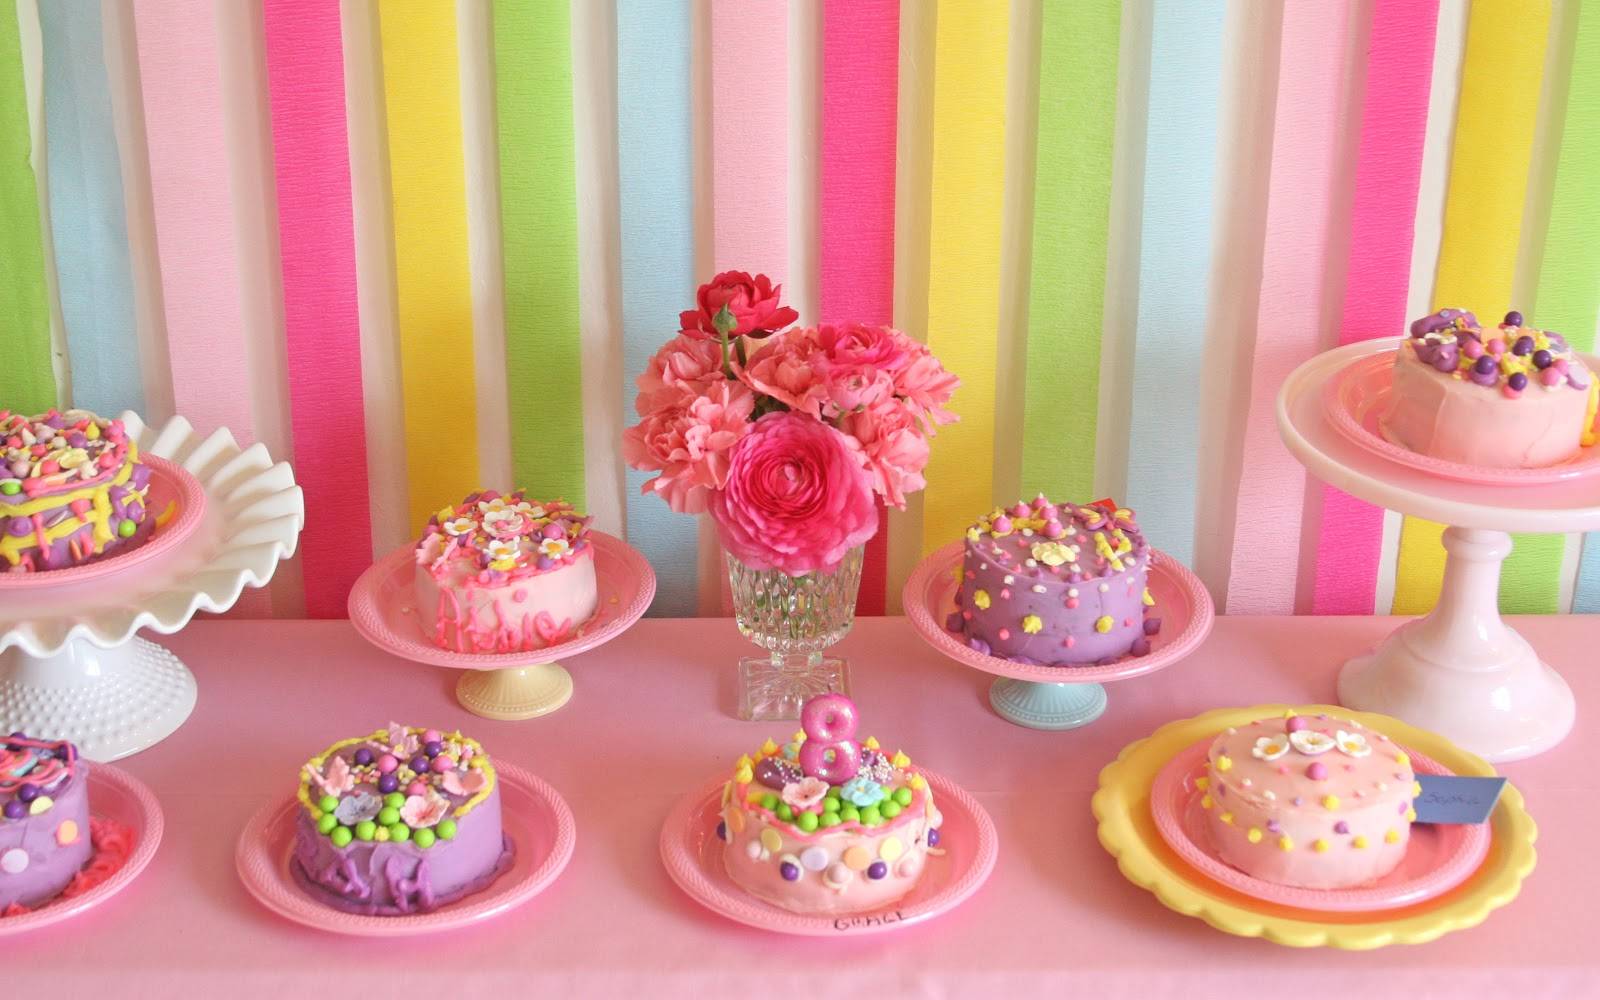 loved seeing all the finished cakes! Each one was so different, and ...